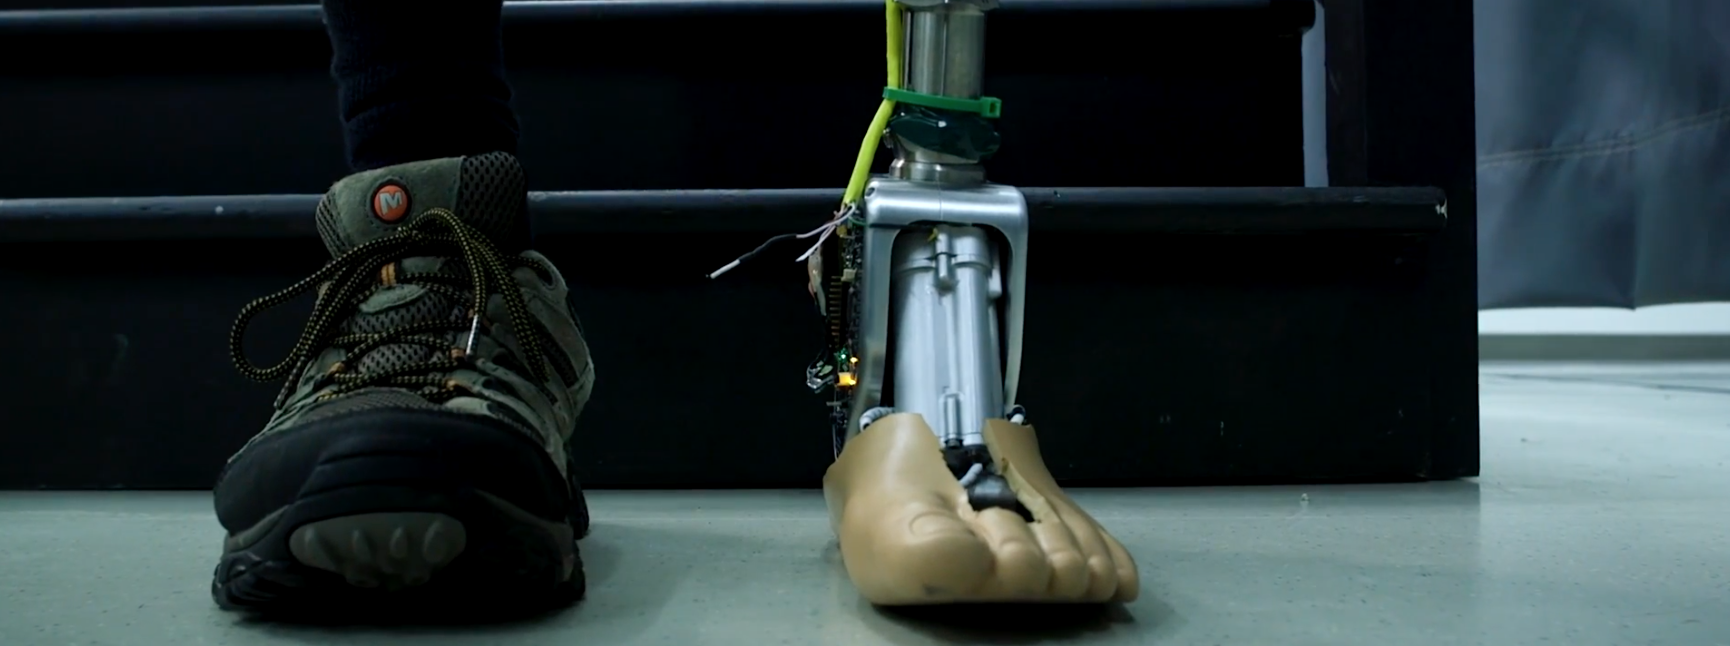 Prosthetic ankle